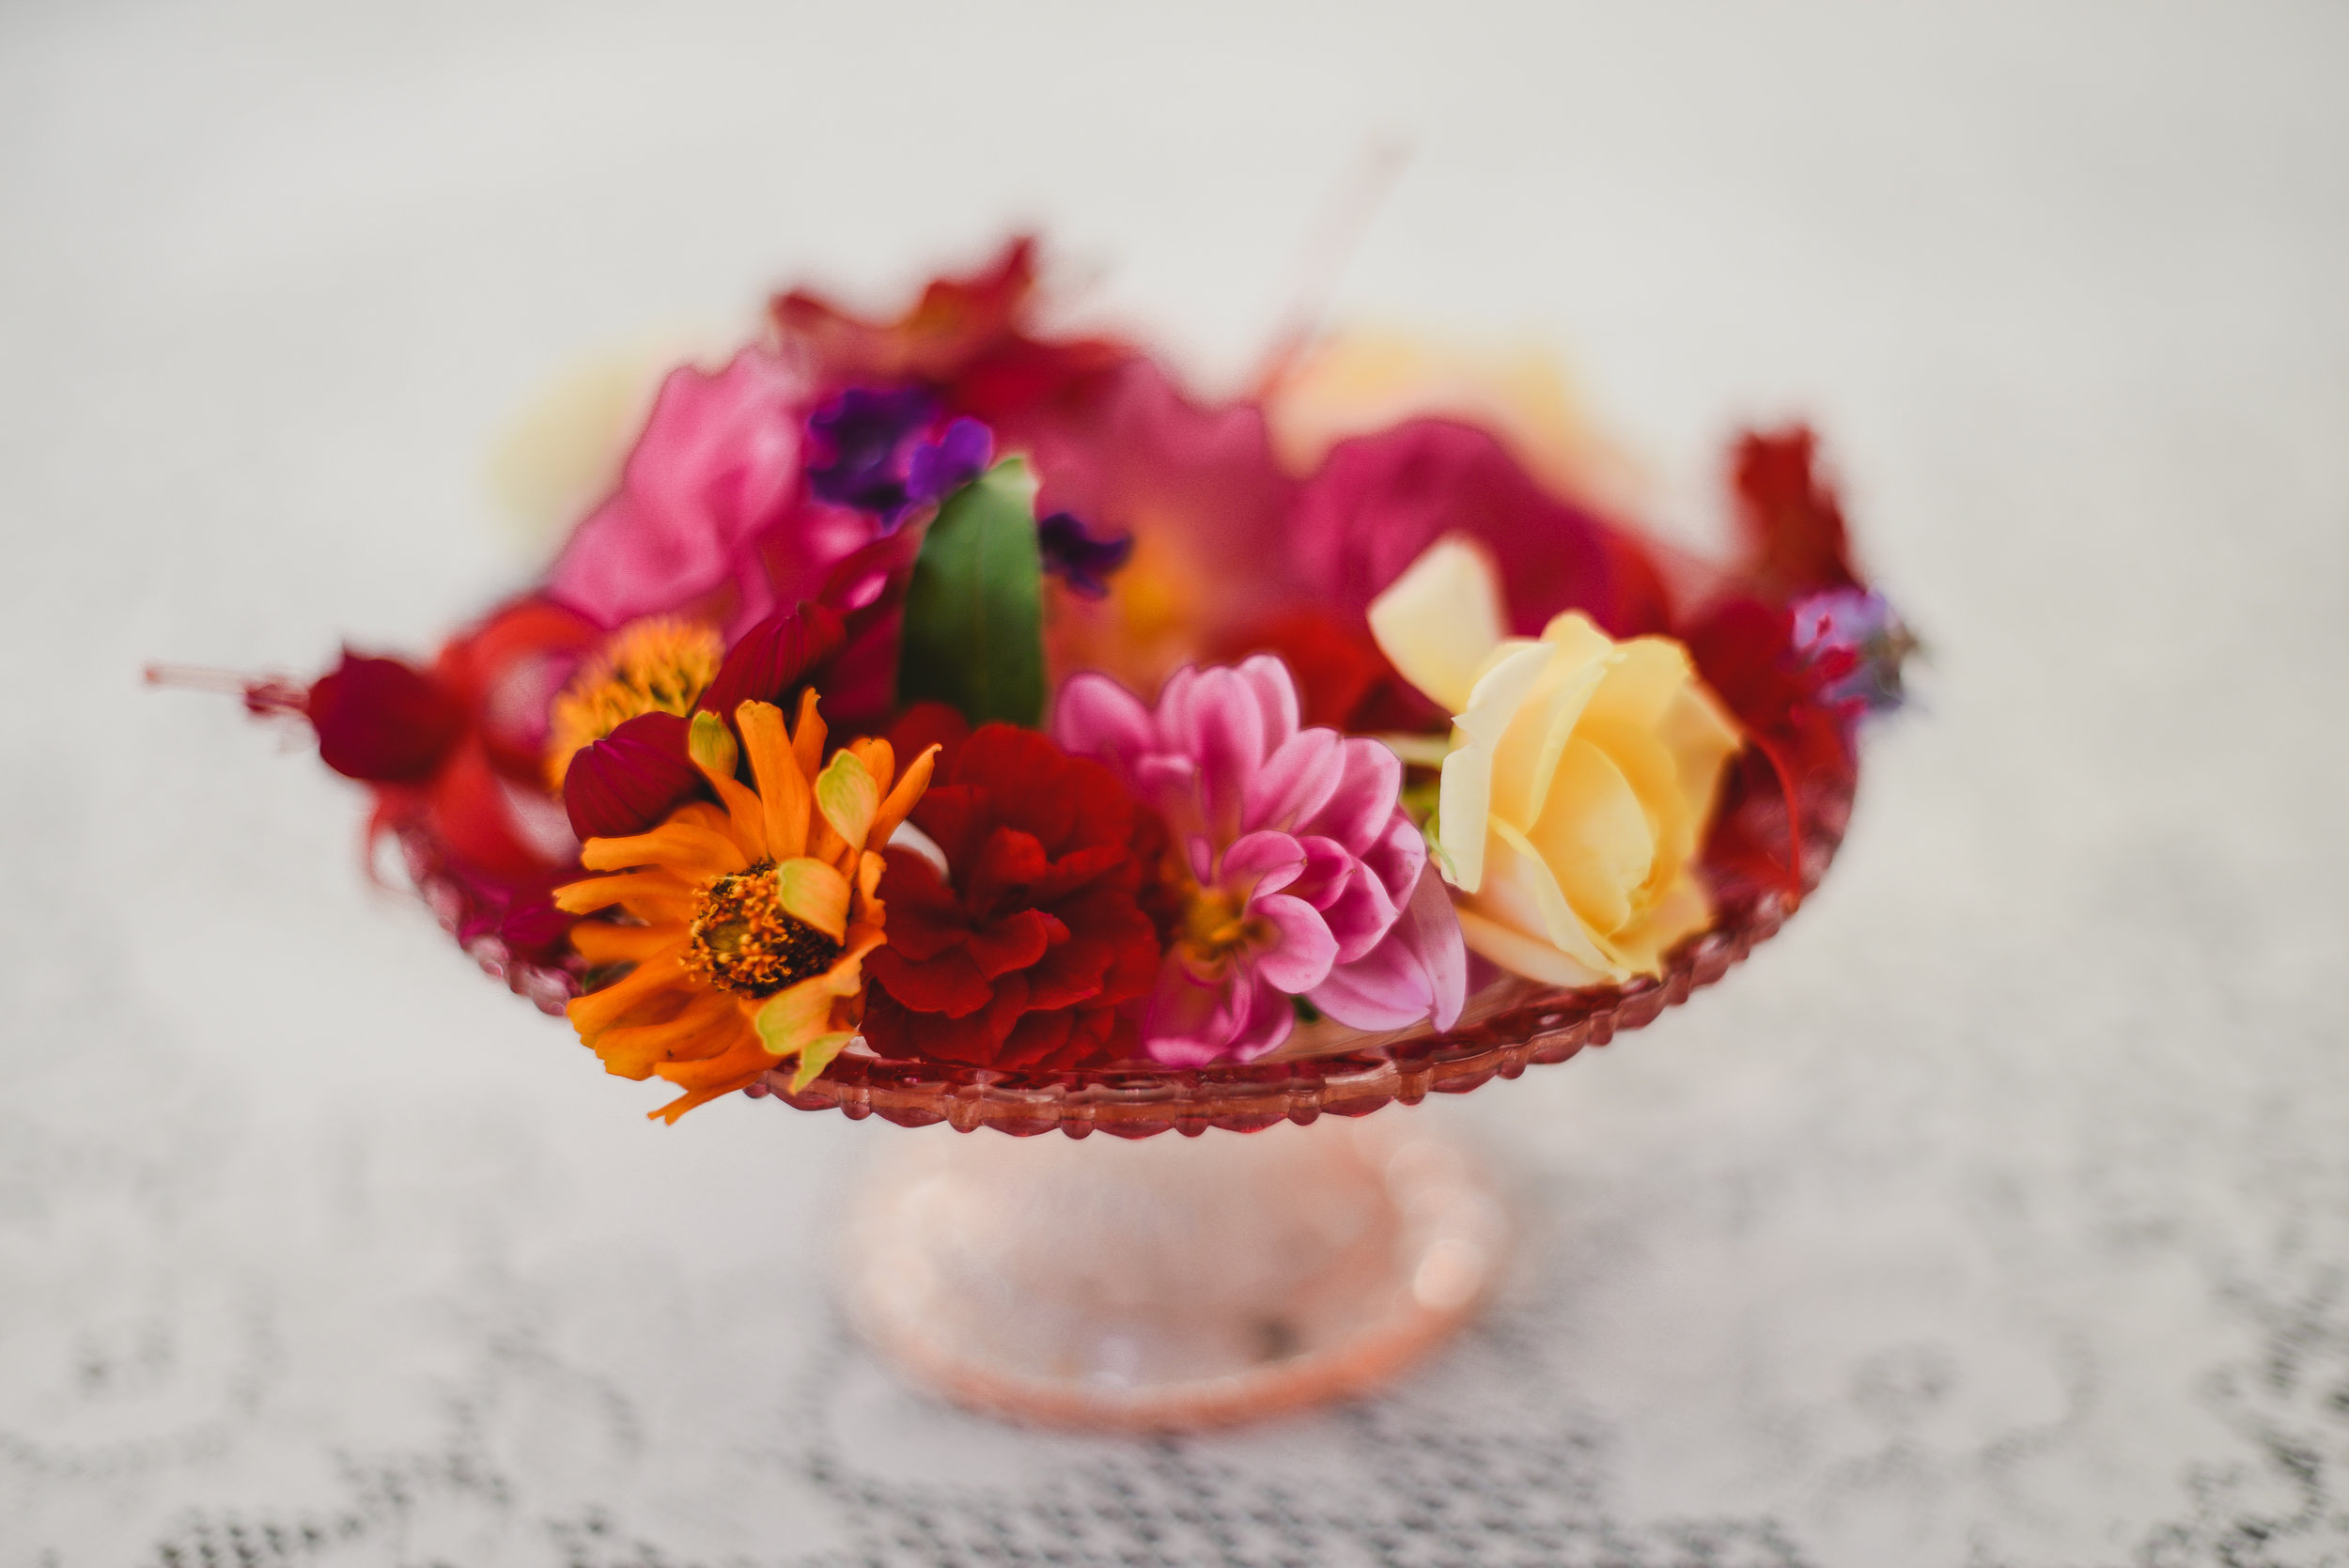 garden flowers on a cake tray